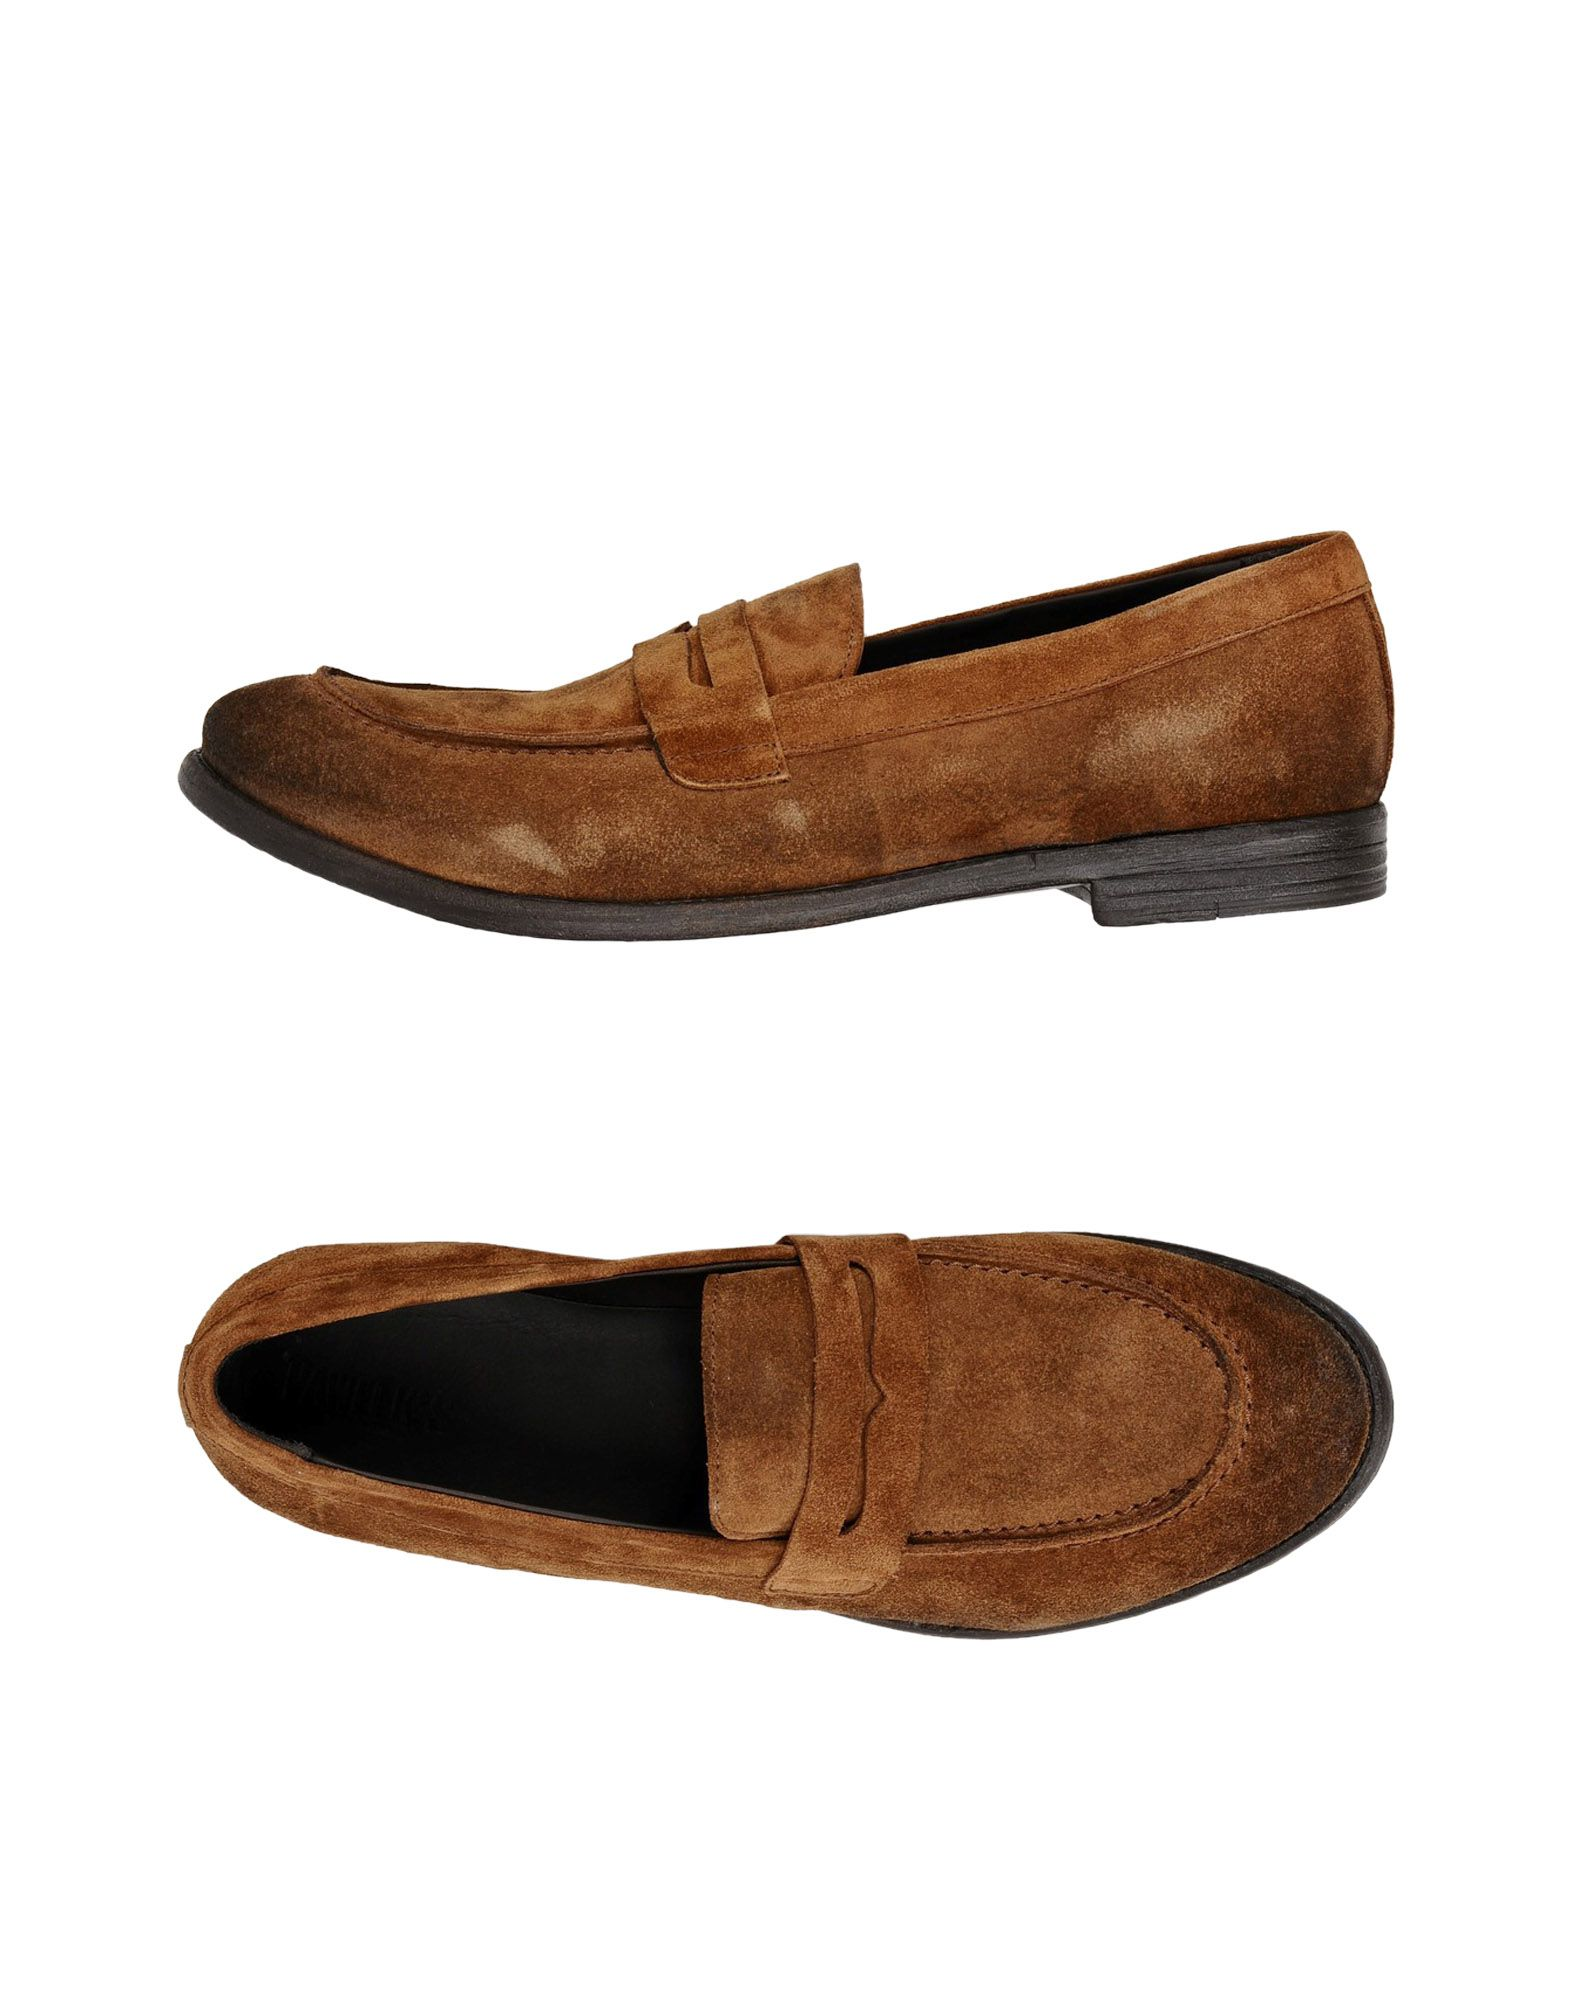 PAWELK'S Loafers in Brown